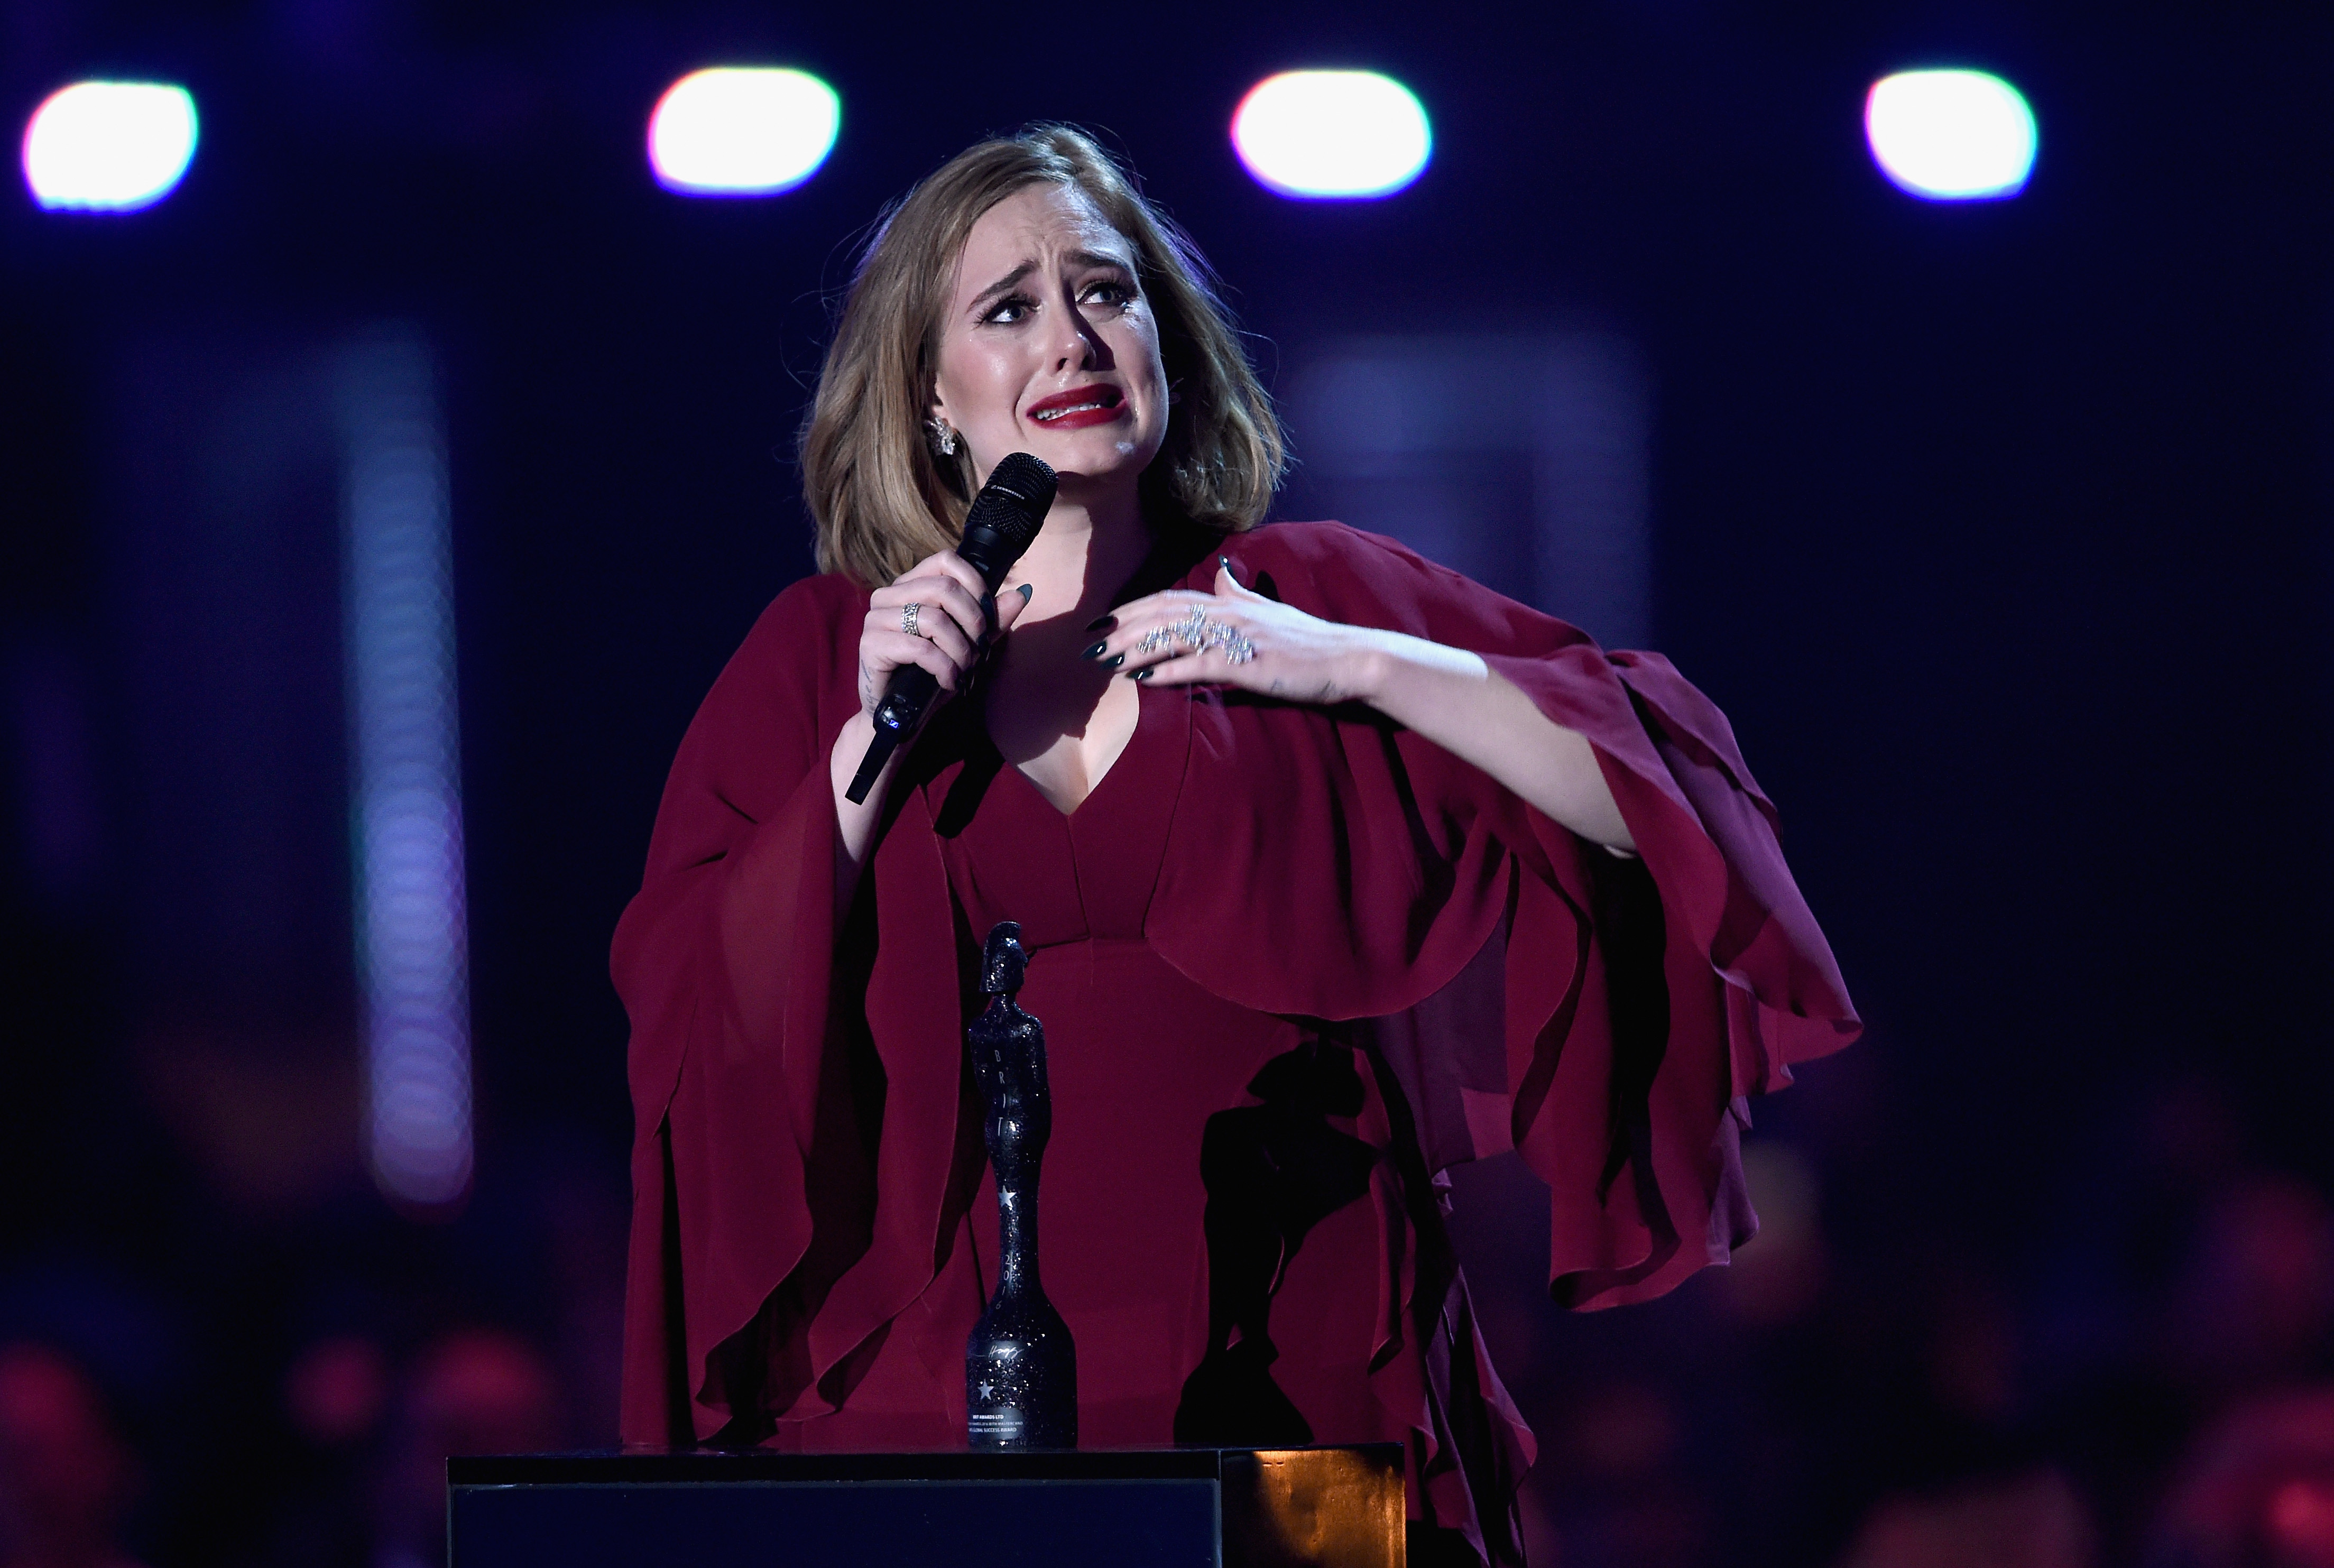 Adele demonstrates how sometimes, even she needs to hold onto her heart and cry.